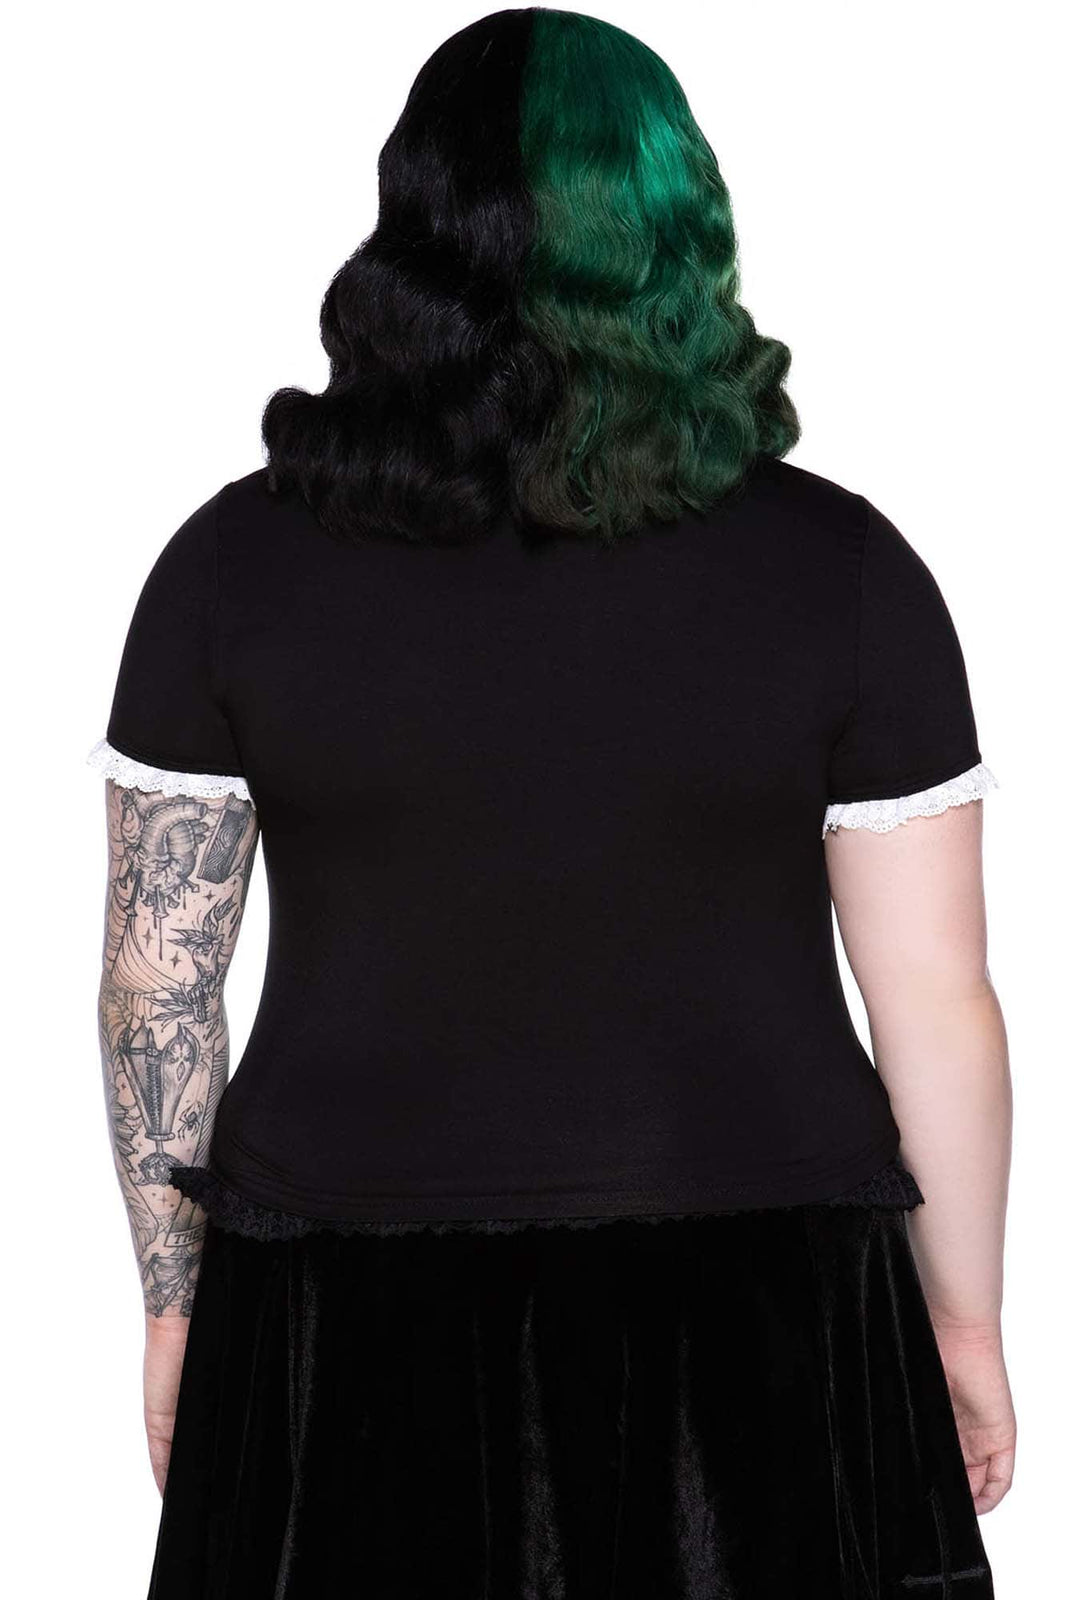 size_shown:3XL